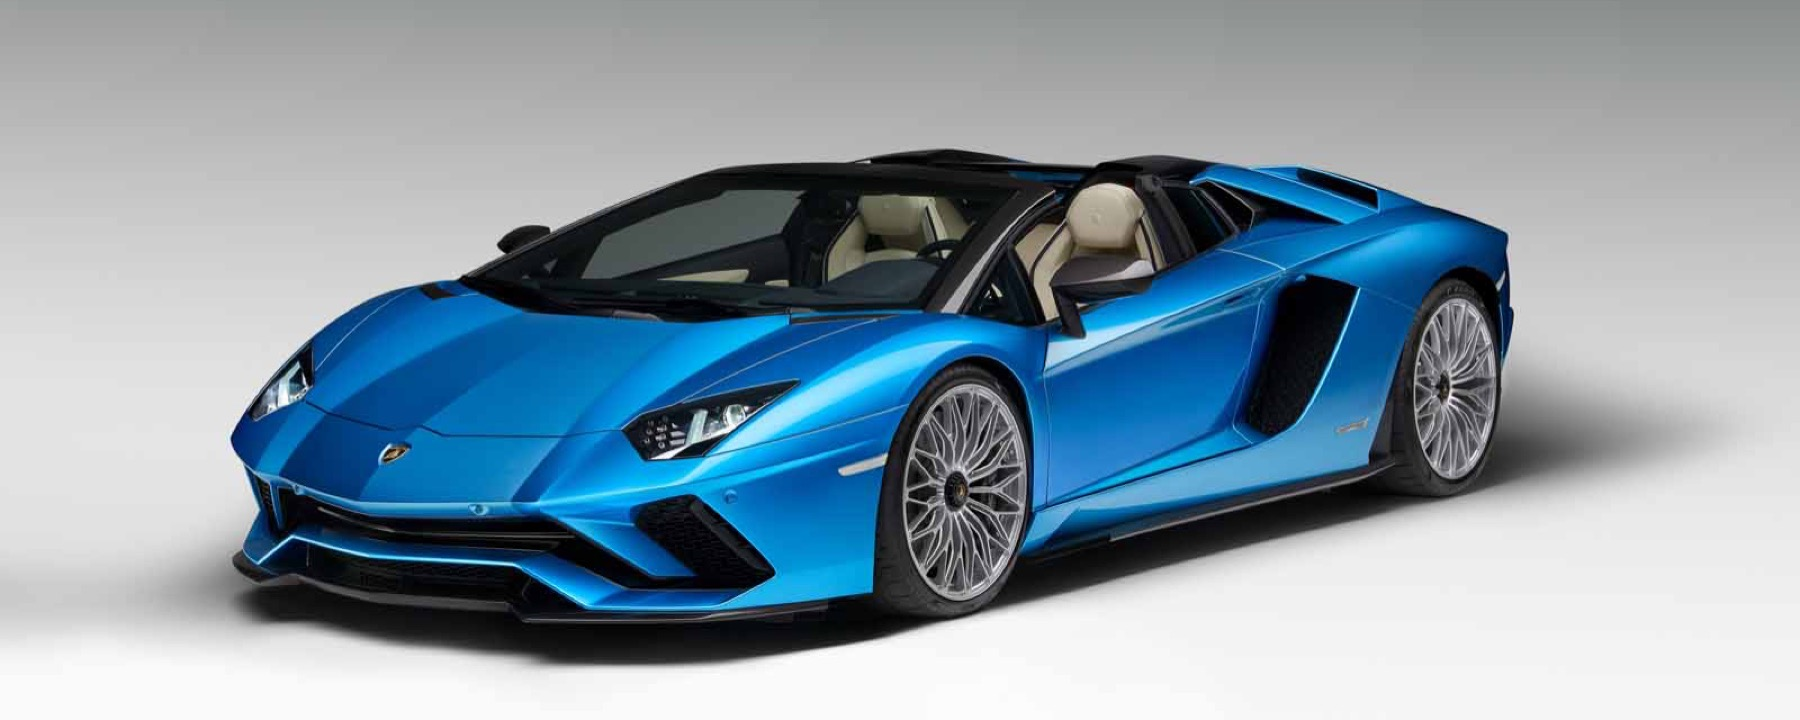 Nice If Youu0027re Going To Purchase A New Lamborghini, Why Not Customize Every  Detail Precisely To Your Liking? Lamborghiniu0027s Online Car Configurator  Allows ...